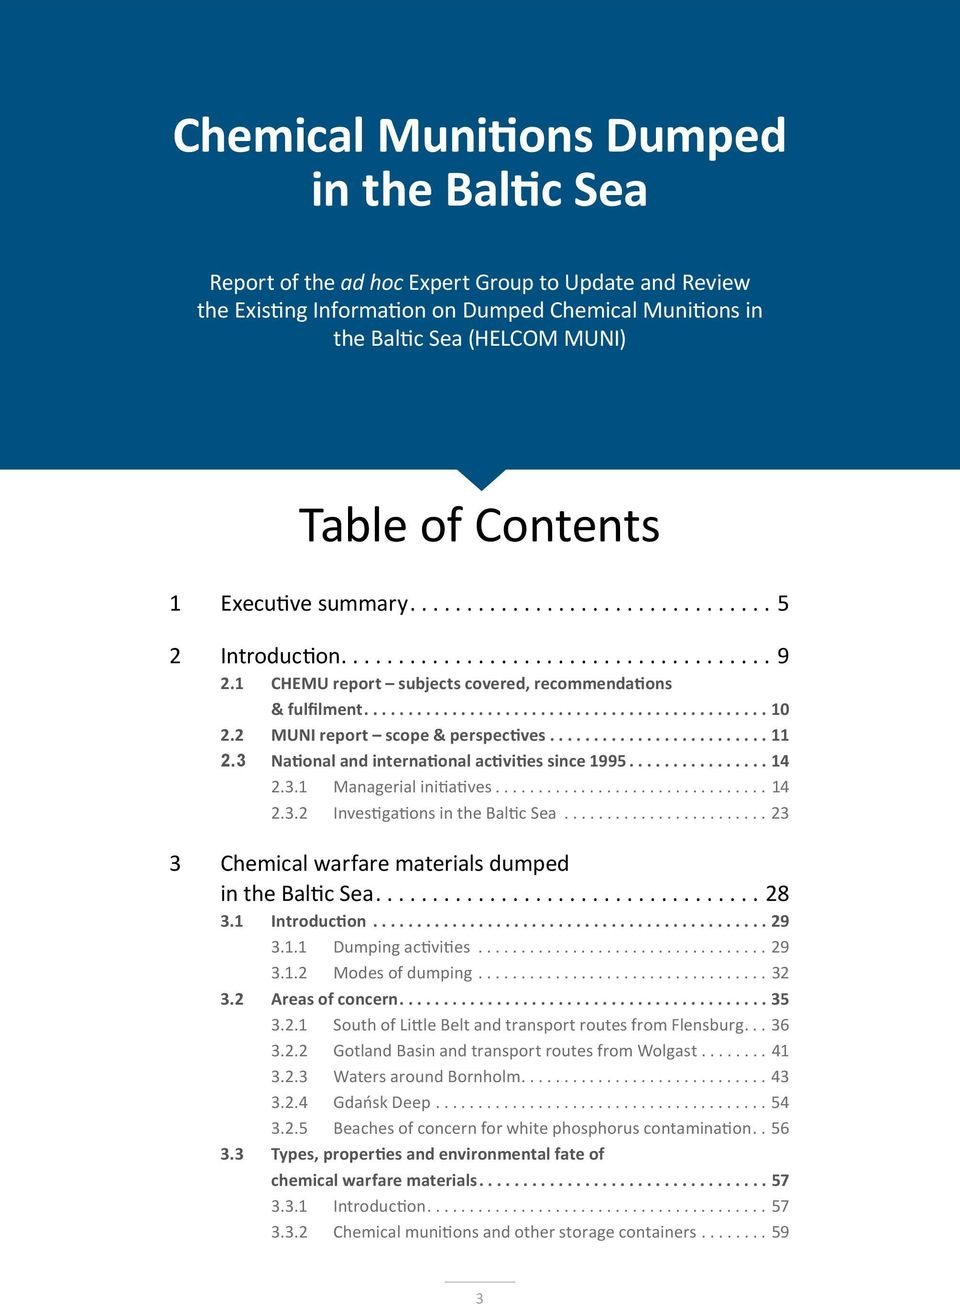 3 National and international activities since 1995...14 2.3.1 Managerial initiatives...14 2.3.2 Investigations in the Baltic Sea...23 3 Chemical warfare materials dumped in the Baltic Sea...28 3.